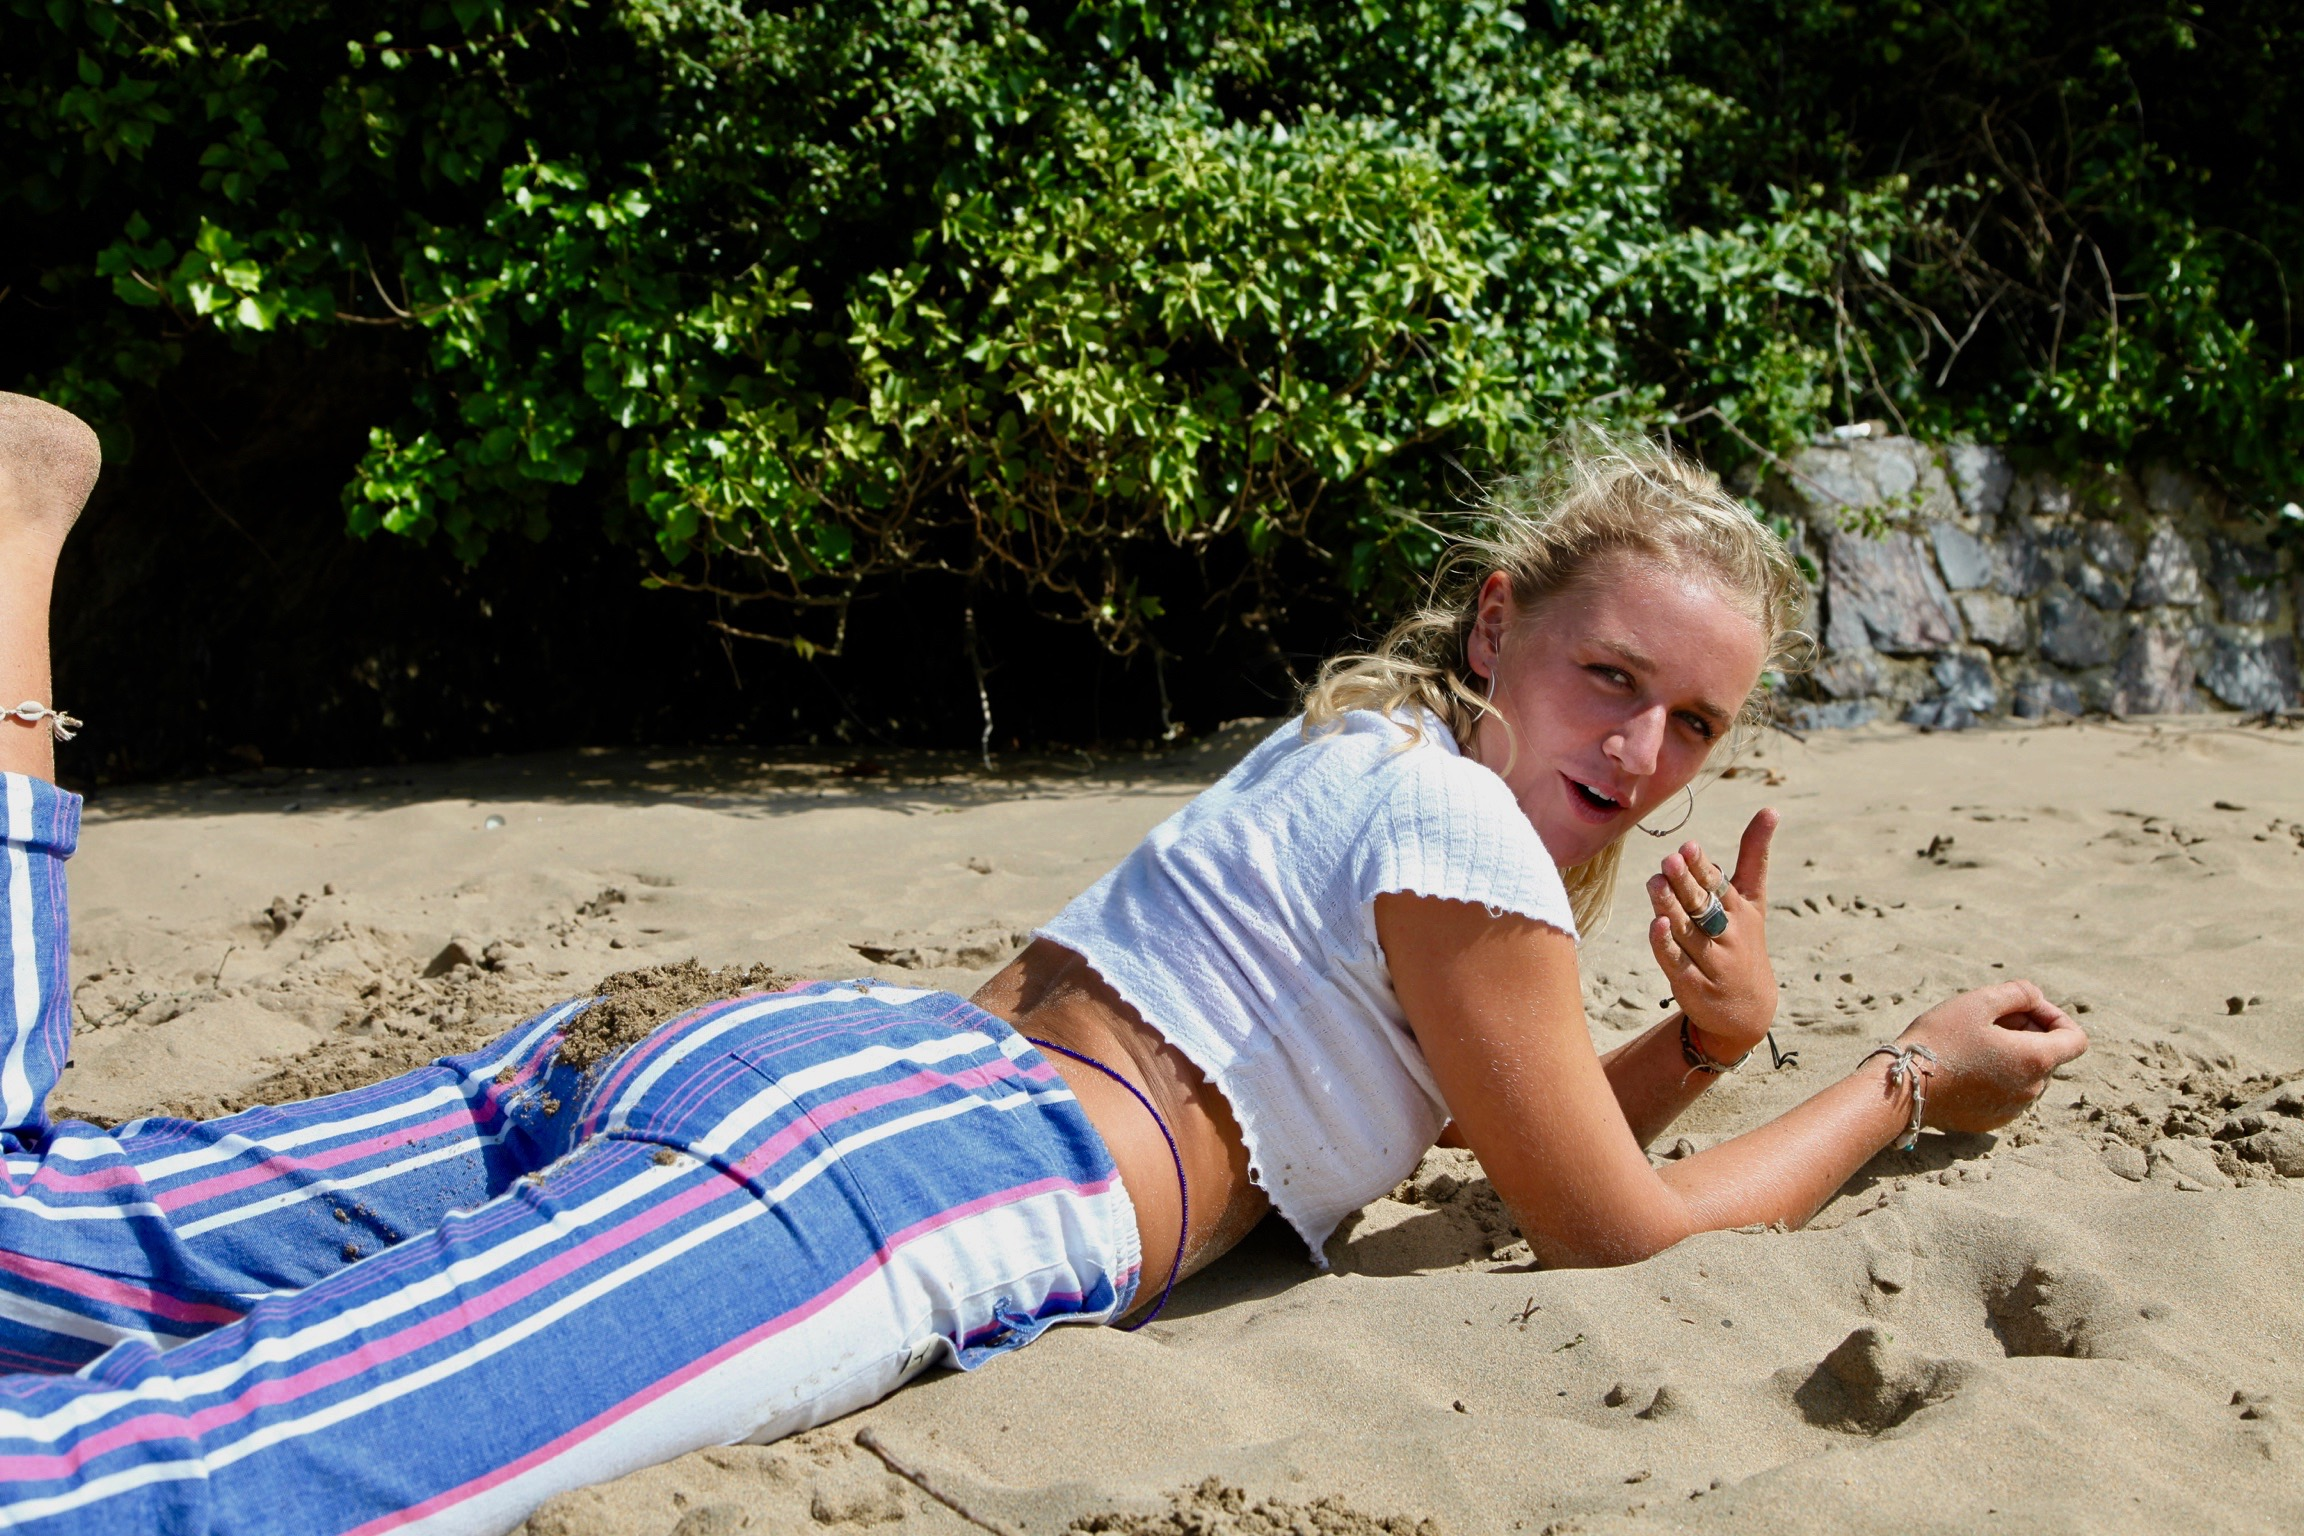 Blonde woman laying face down on the sand faking anguish and wearing colorful striped kikoy pants